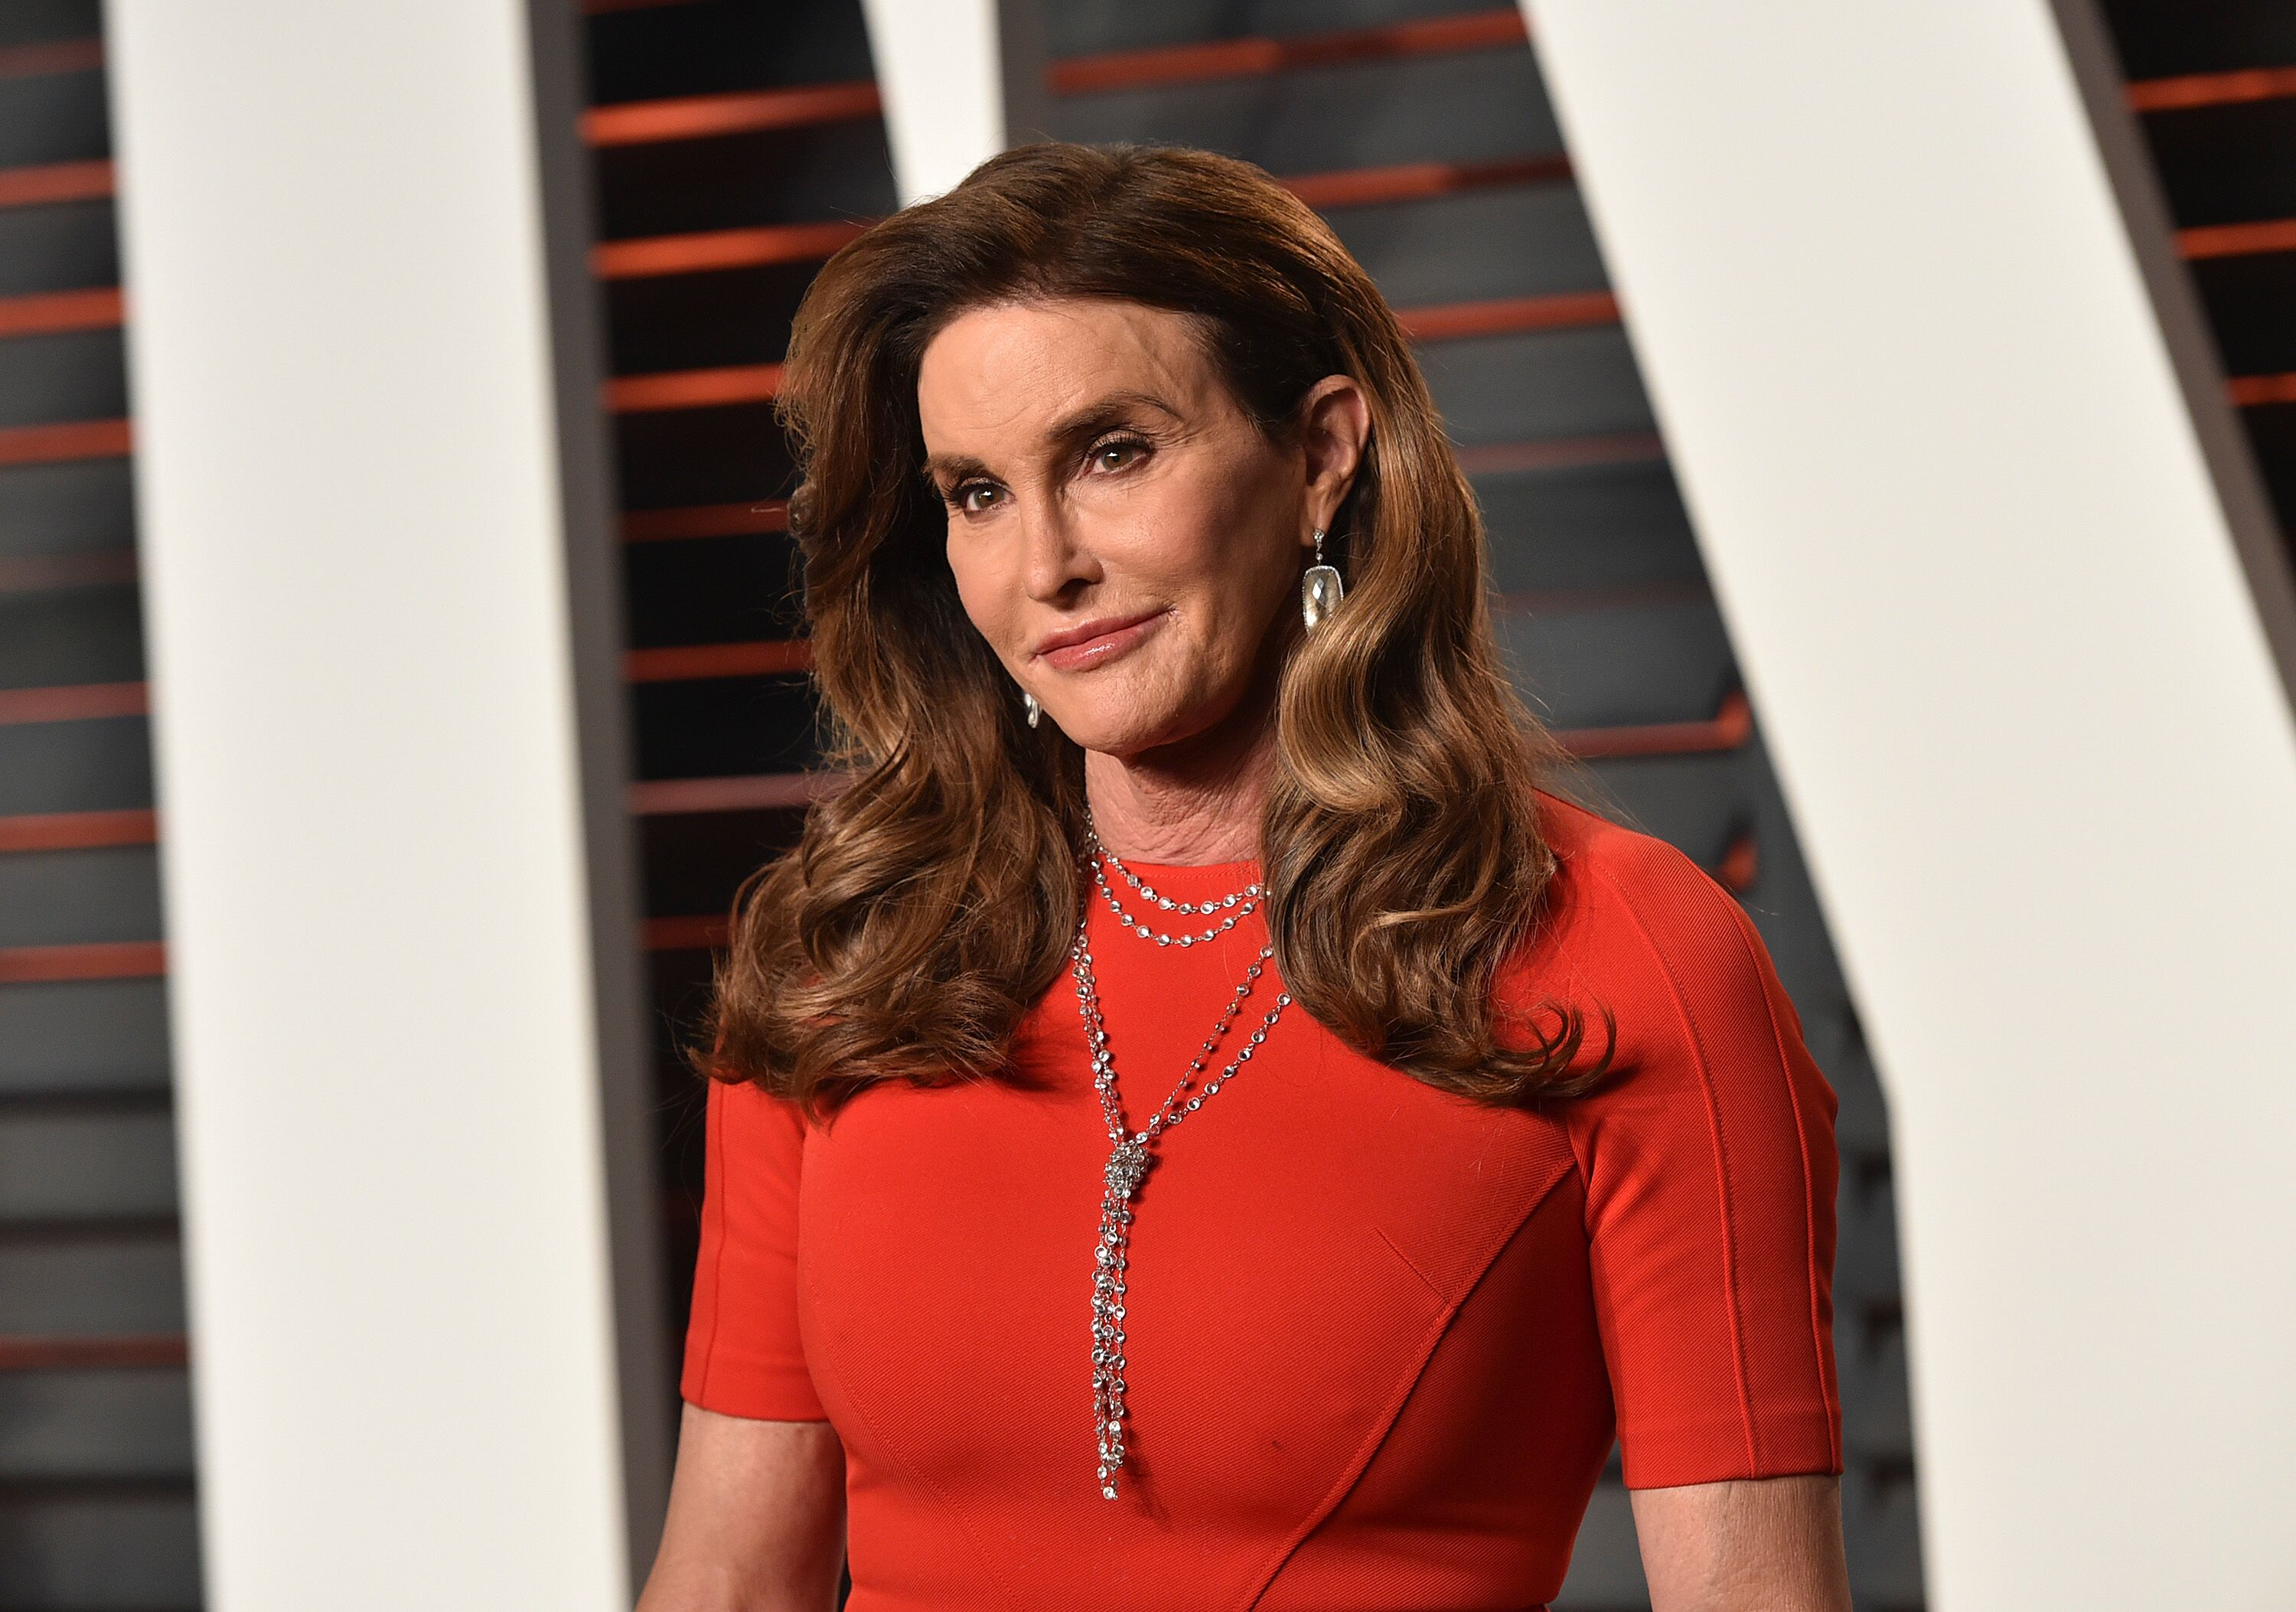 Caitlyn Jenner arrives at the 2016 Vanity Fair Oscar Party Hosted By Graydon Carter. | Source: Getty Images